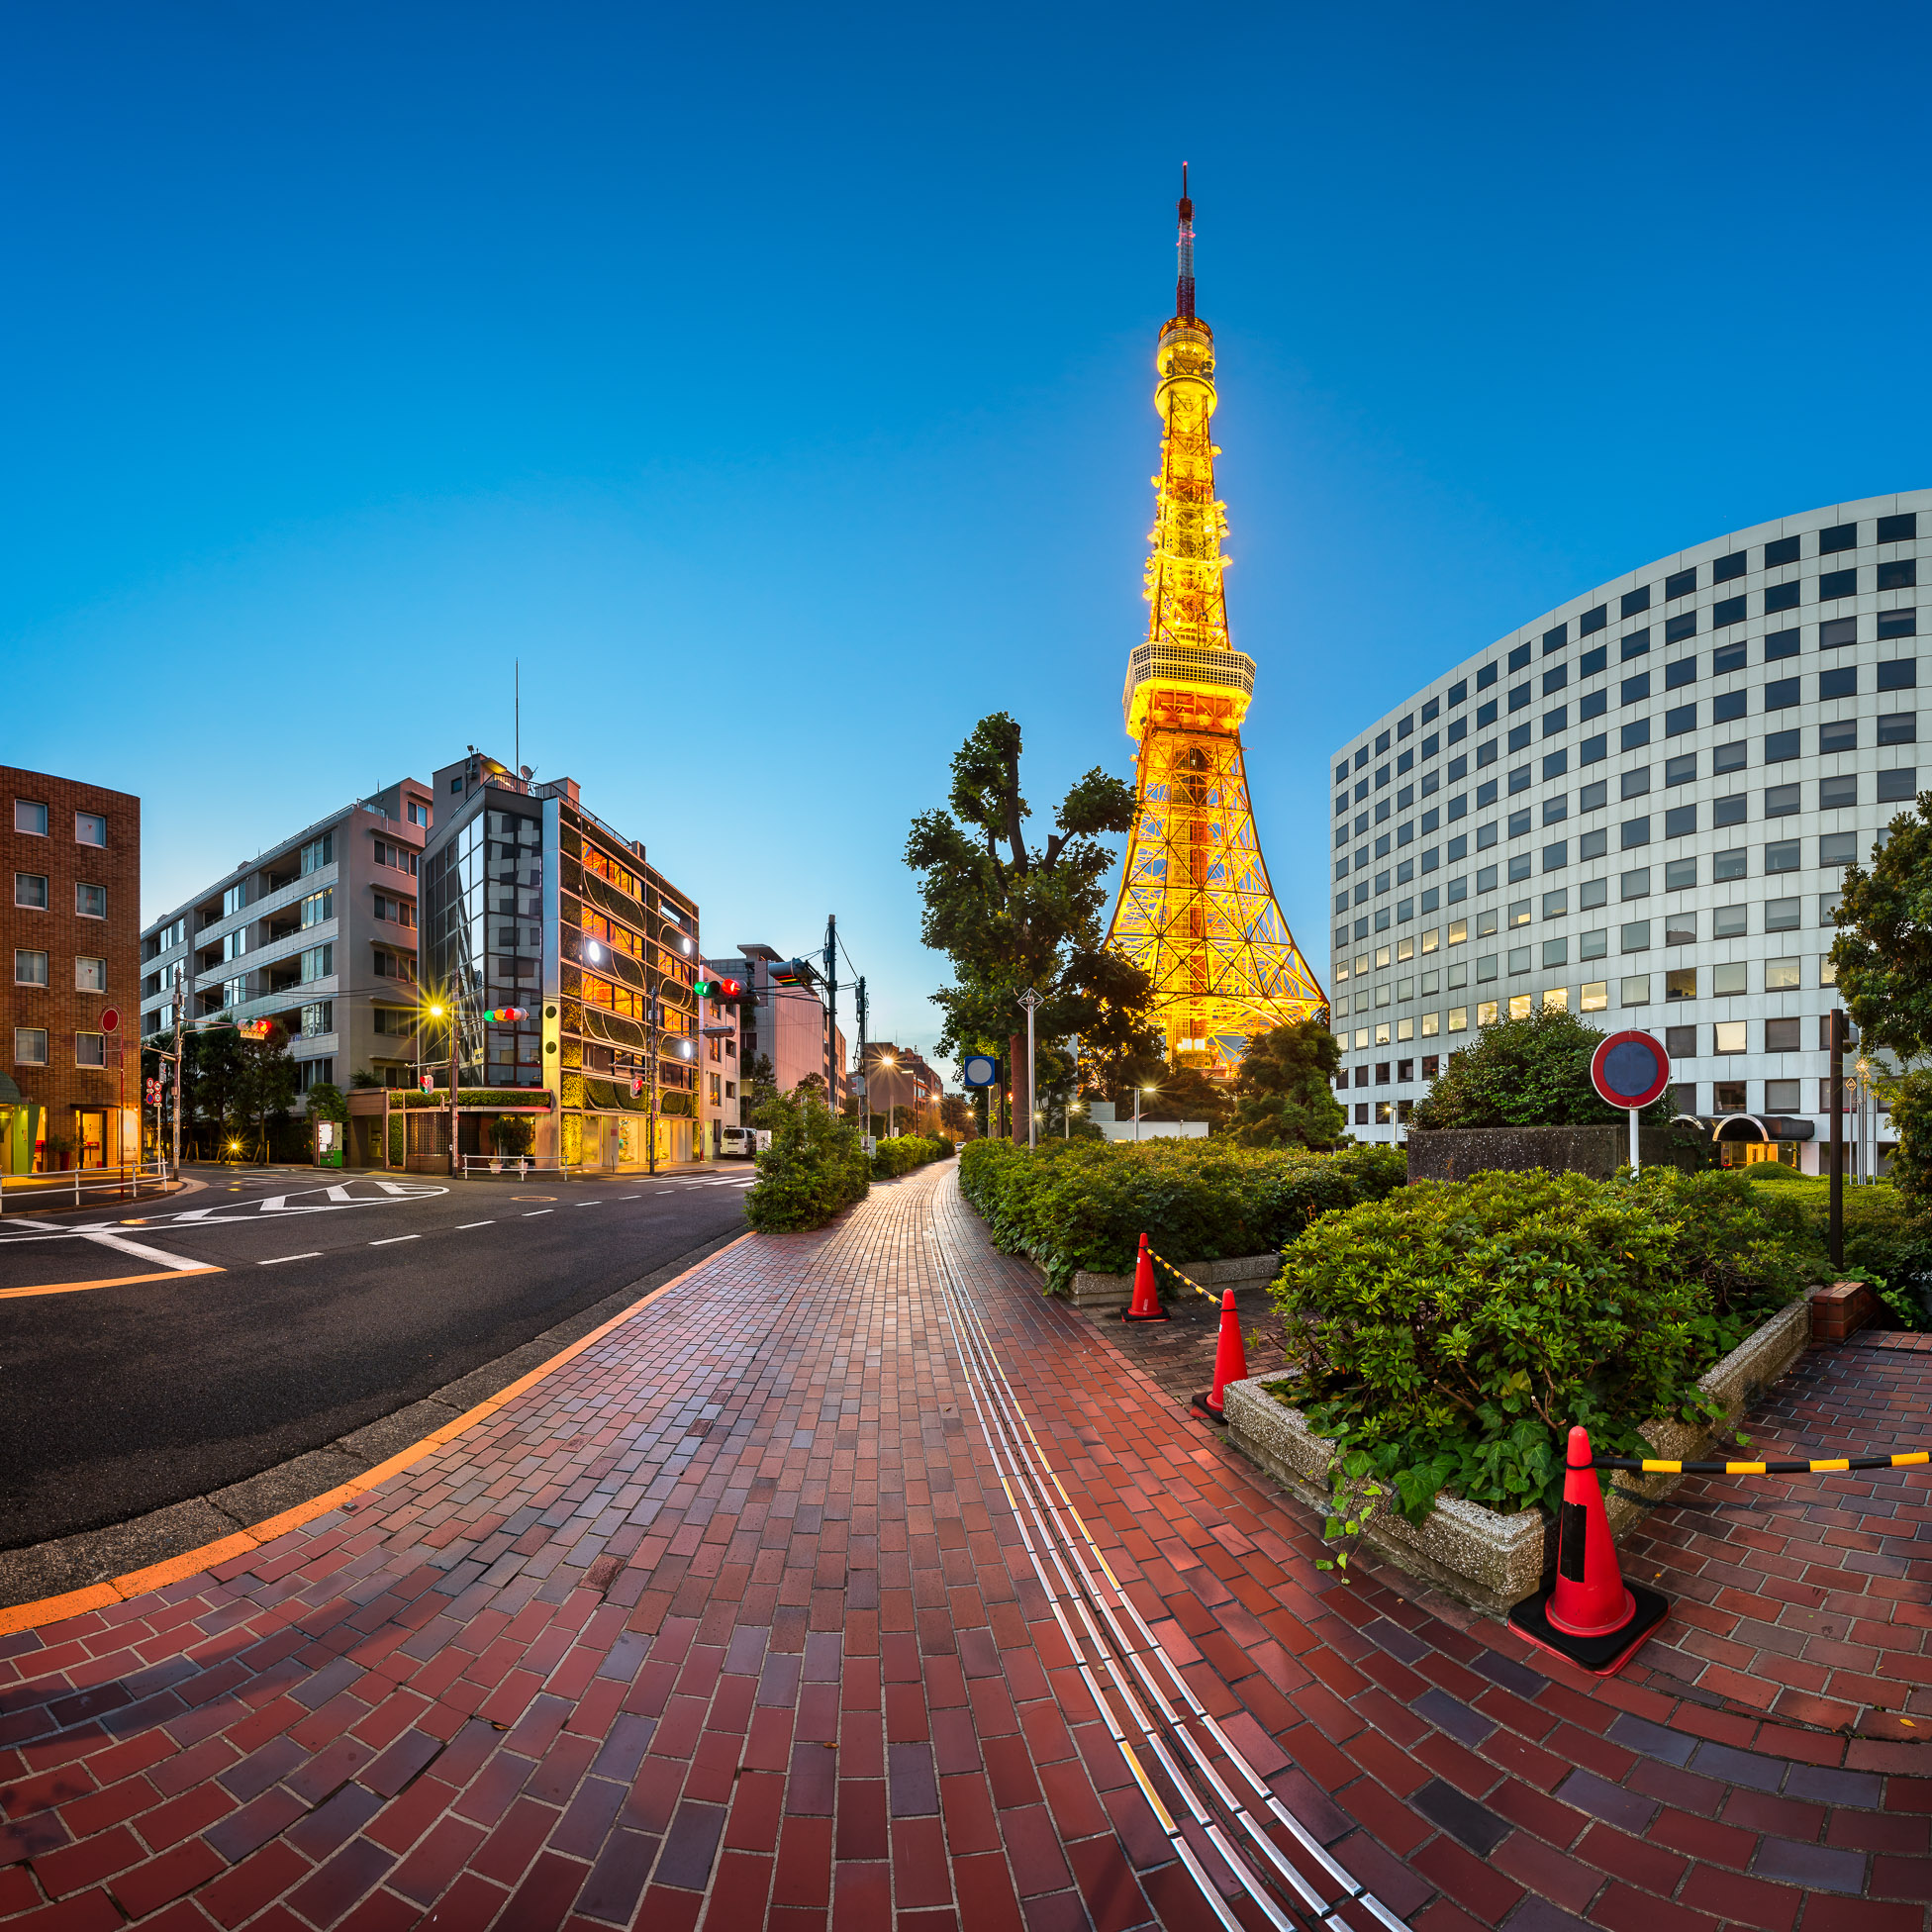 Tokyo Tower and Shibakoen Street in the Morning, Minato, Tokyo, Japan